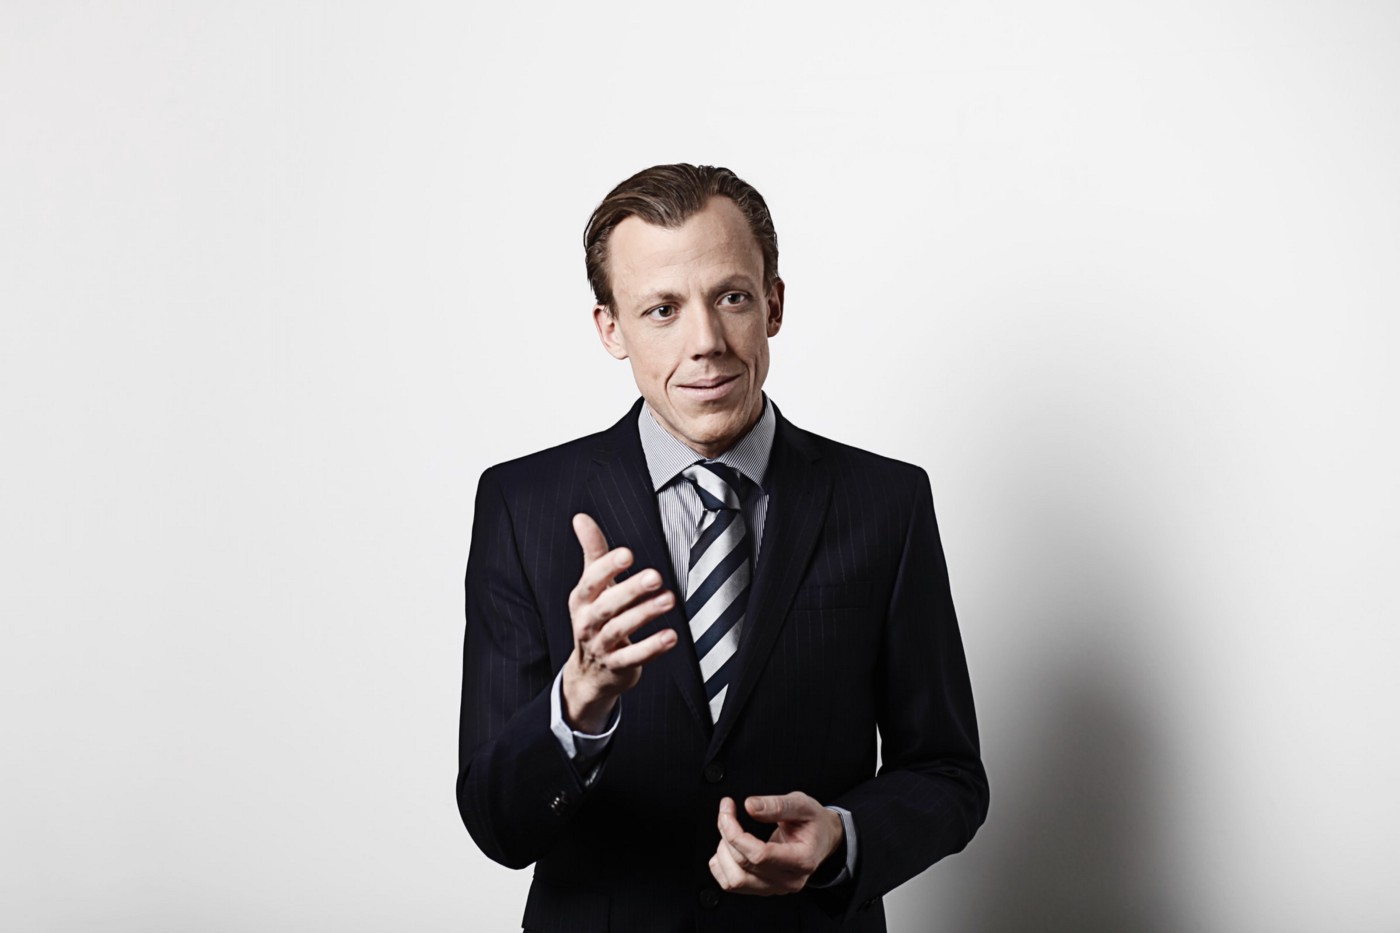 A person in a suit talking.